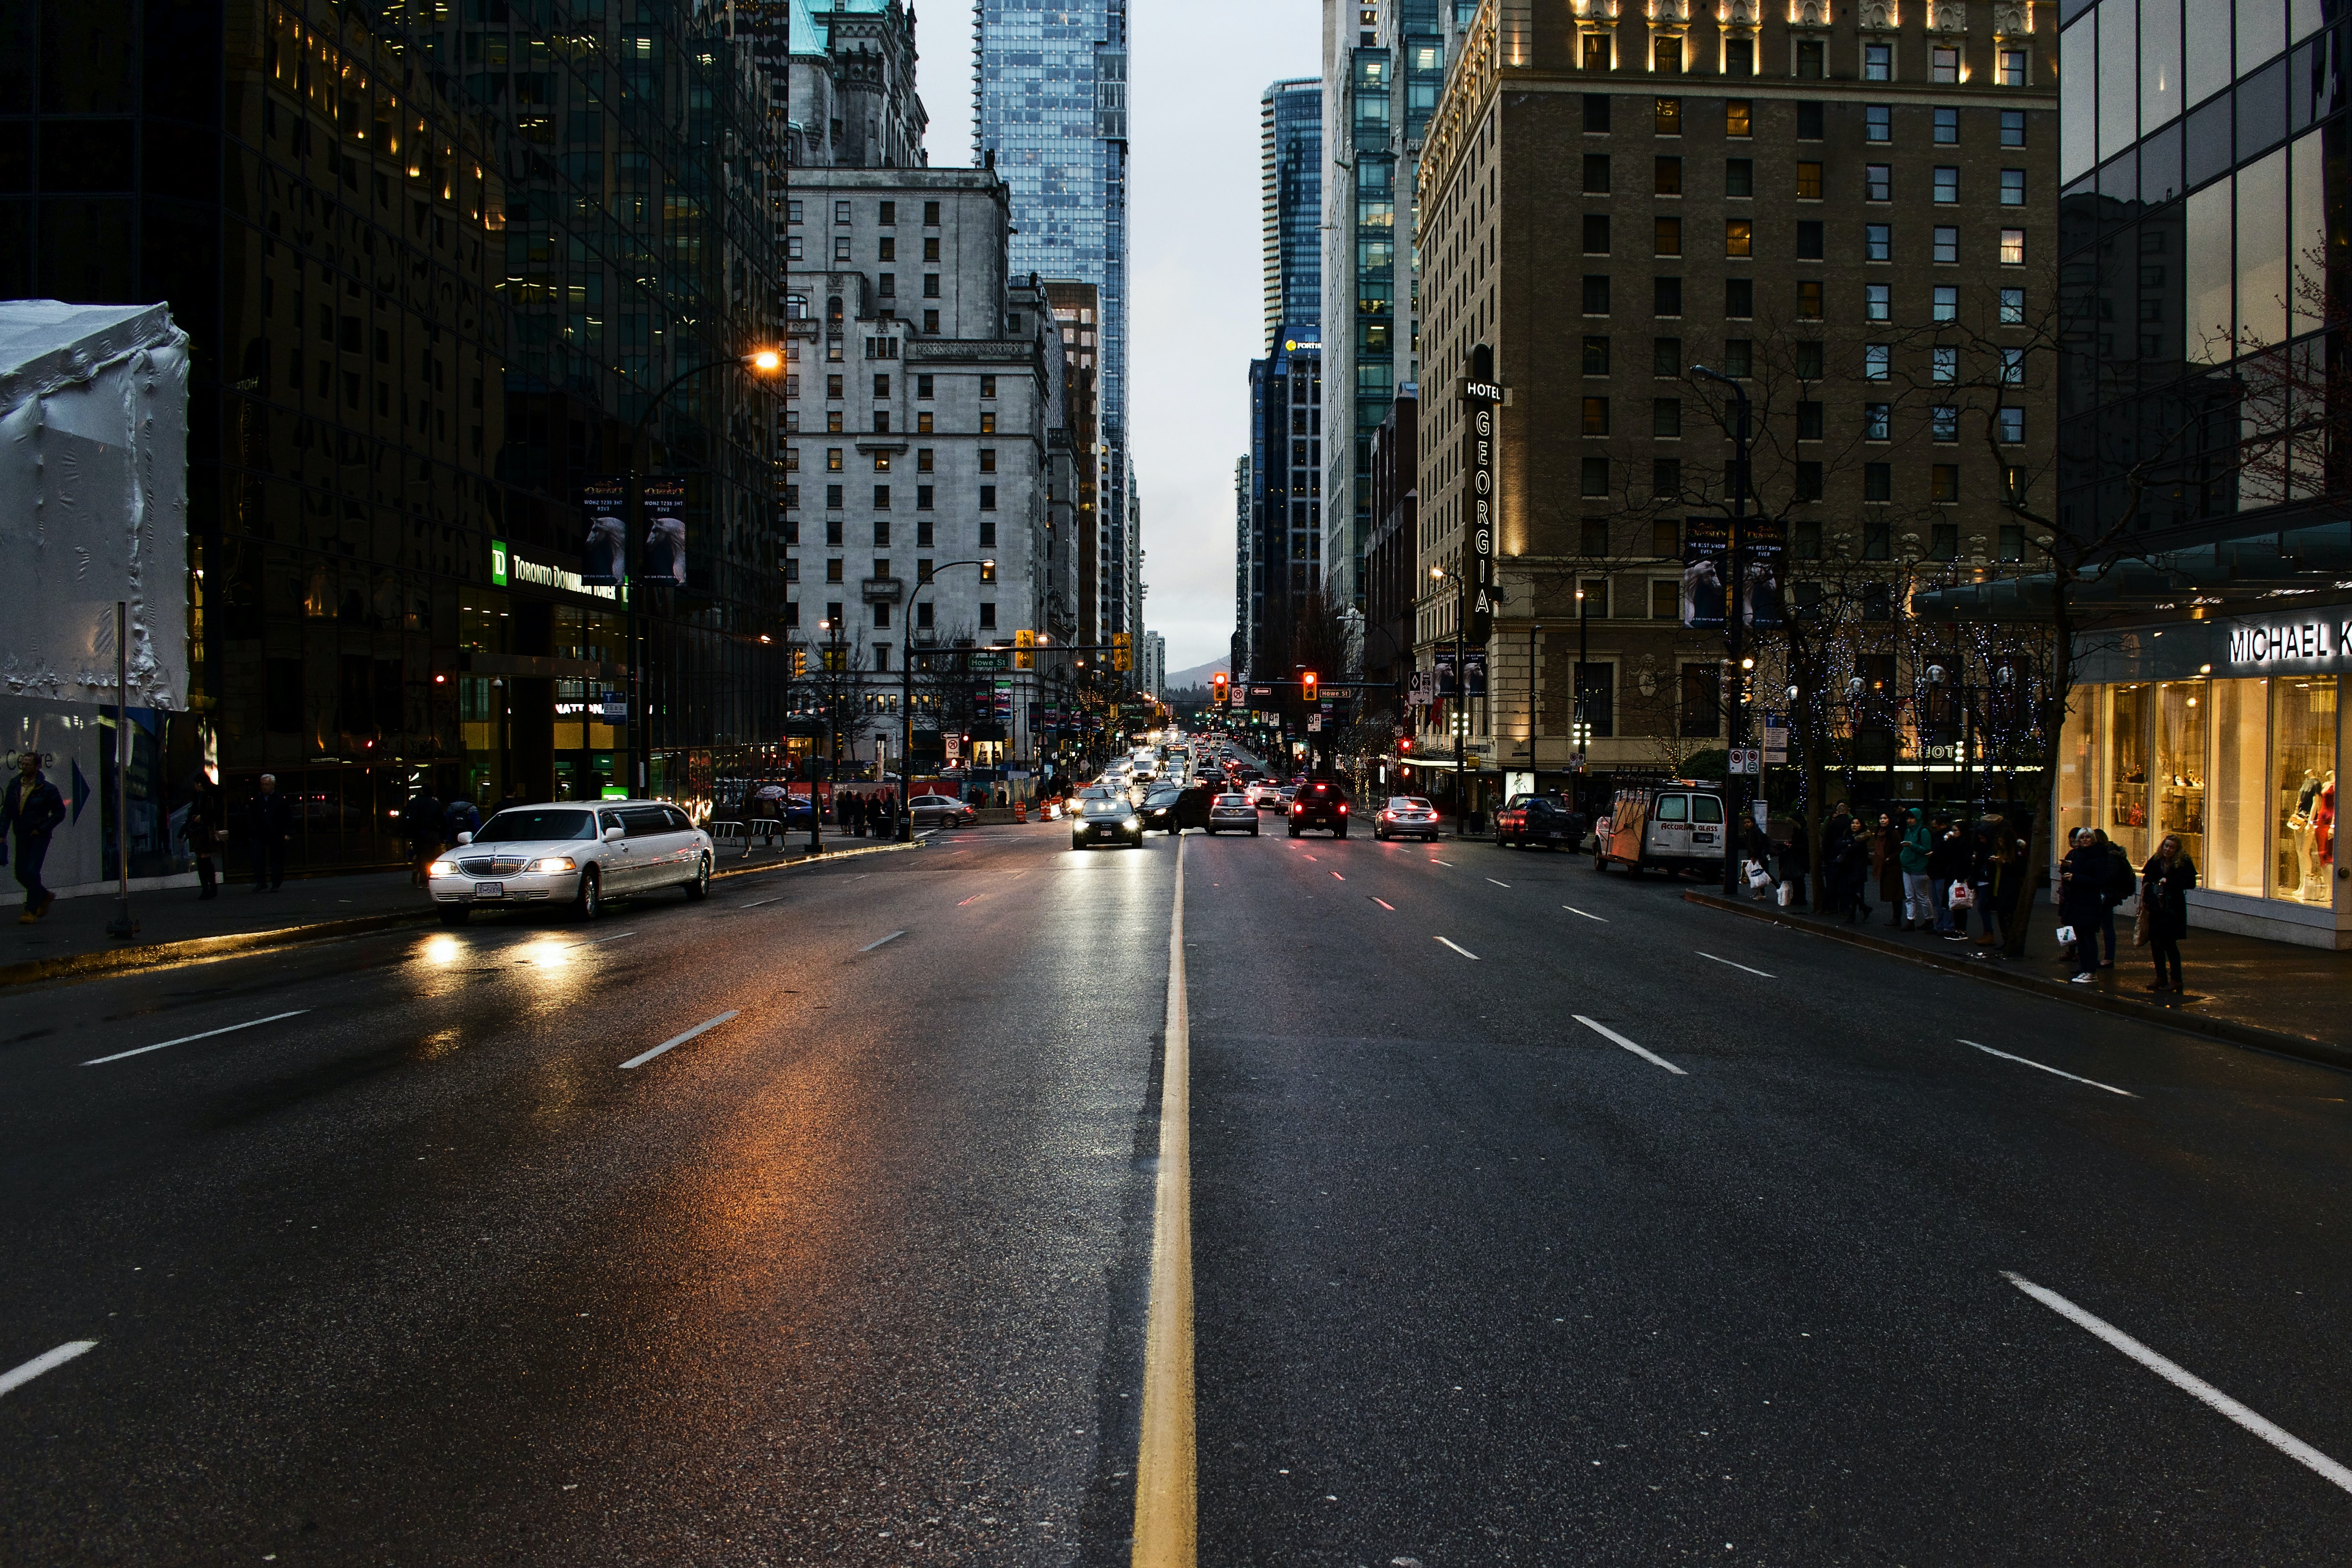 Middle of a Vancouver street, showing cars and buildings from a person's perspective